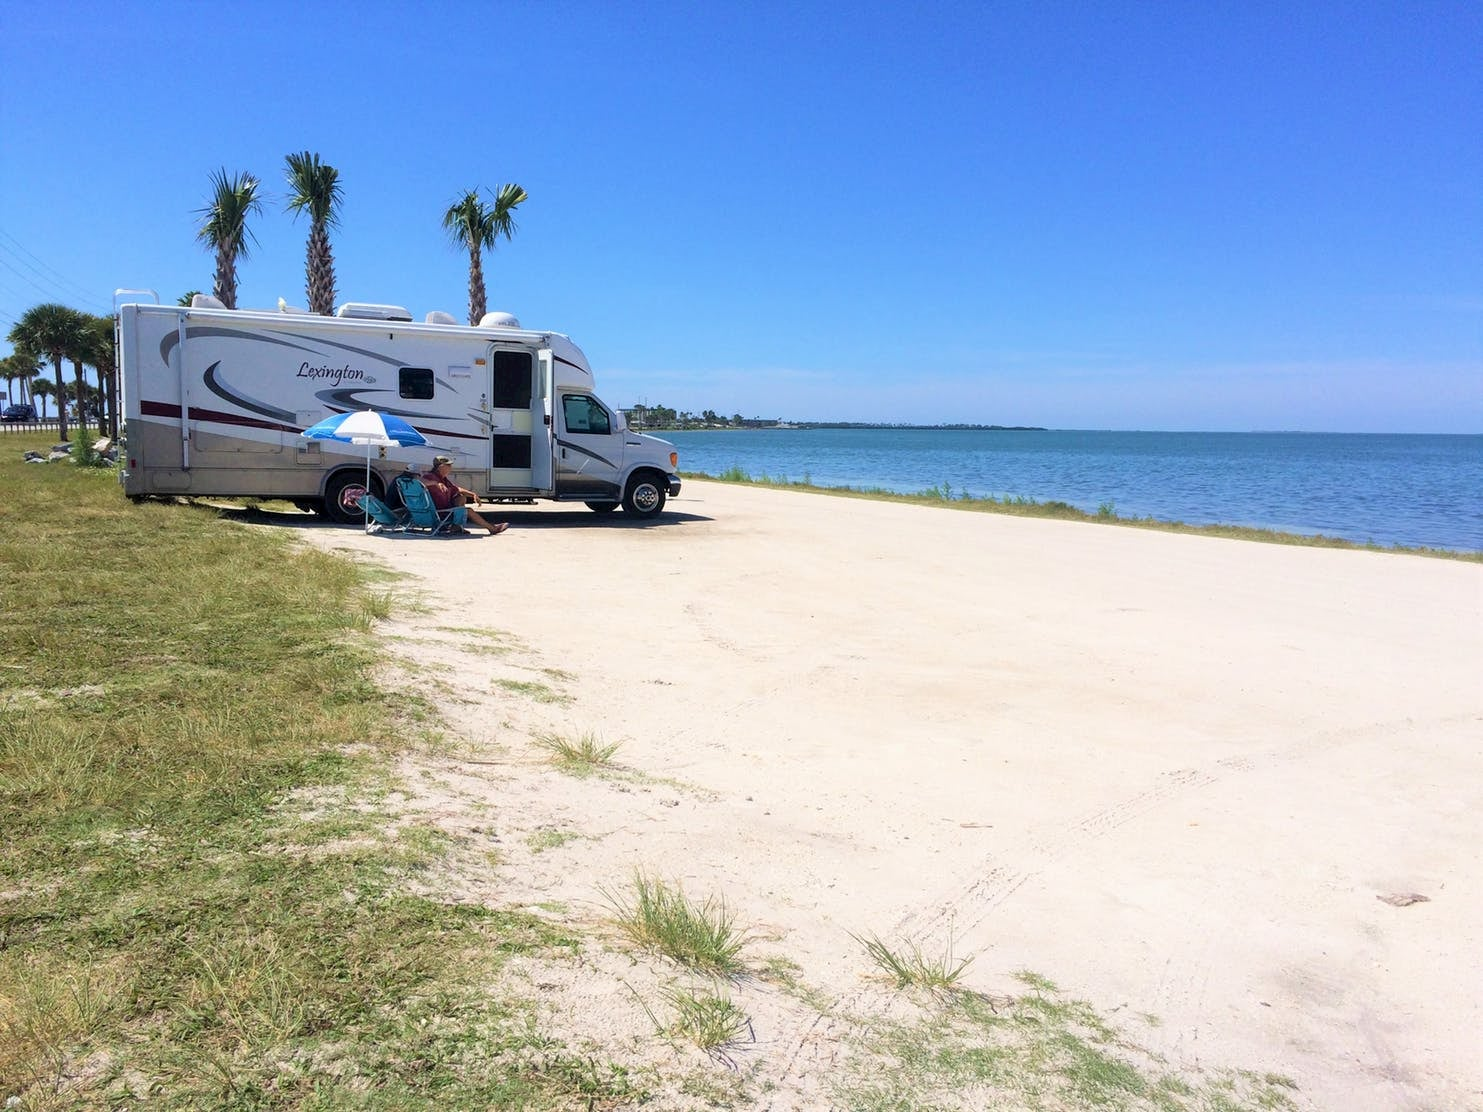 RV parked on the beach beside the ocean and palm trees.